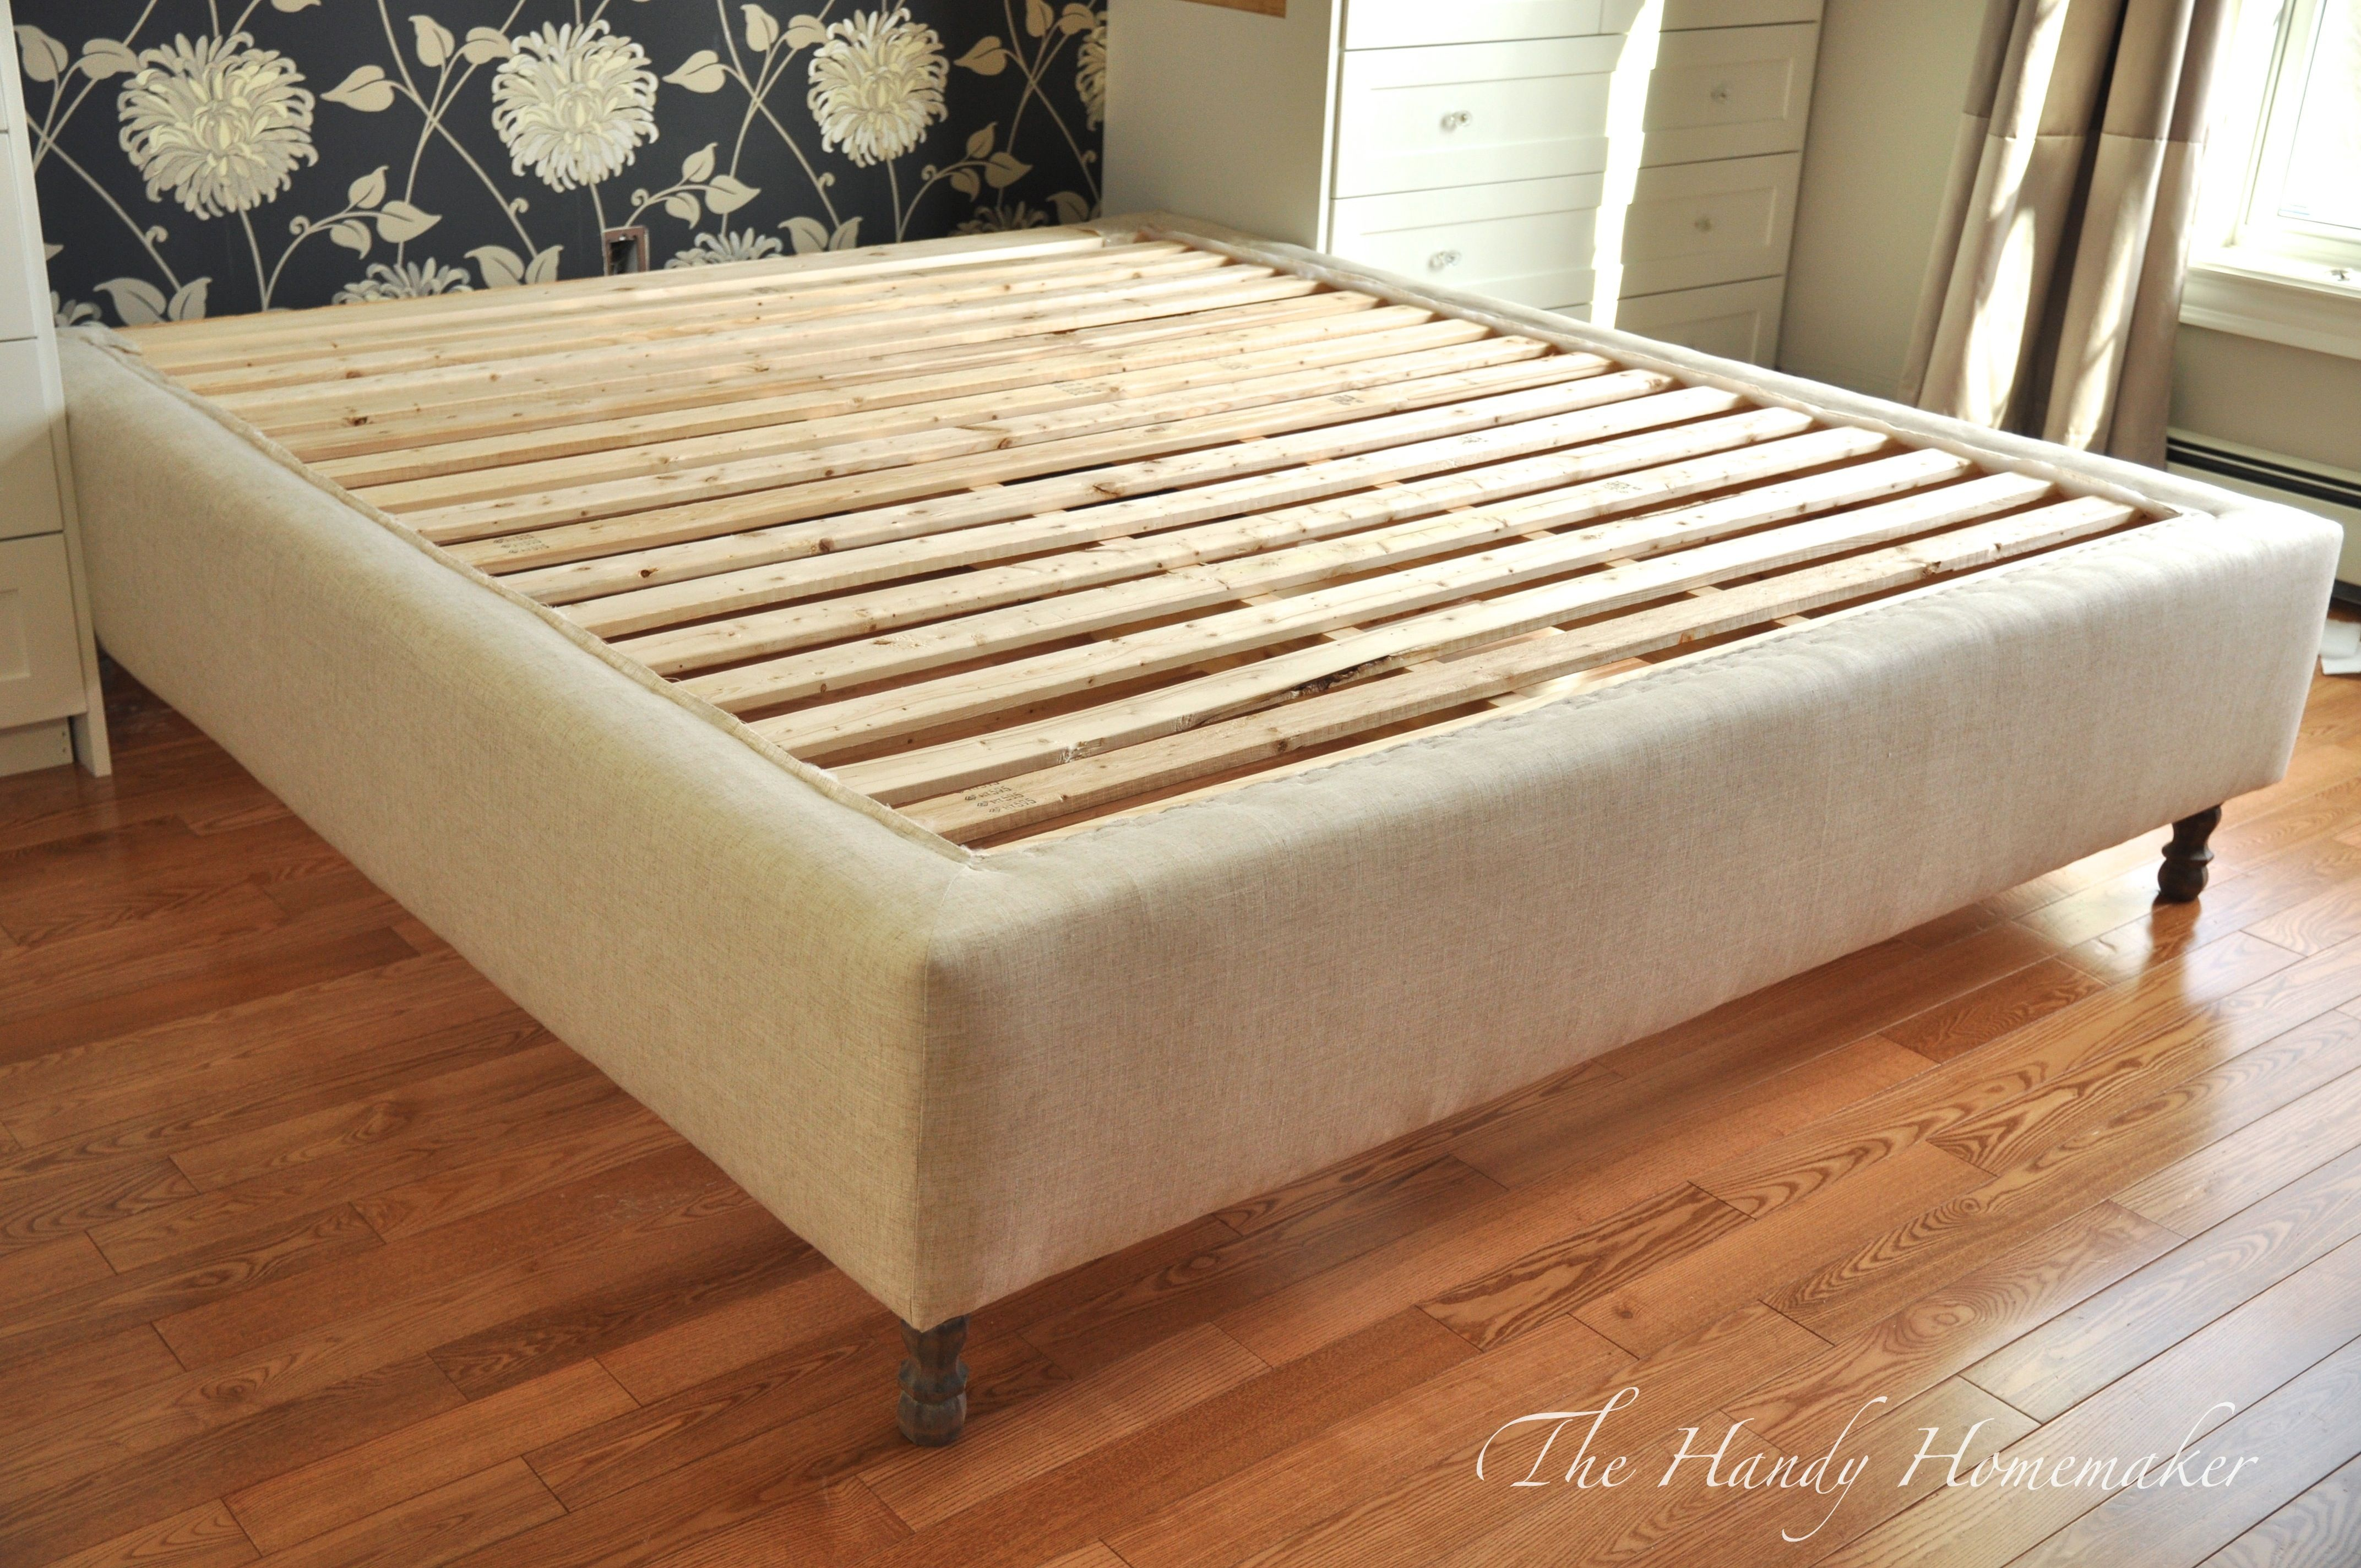 Simple Bed Upholstered Bed Frame Diy Part 1 Diy Projects Upholstered Bed